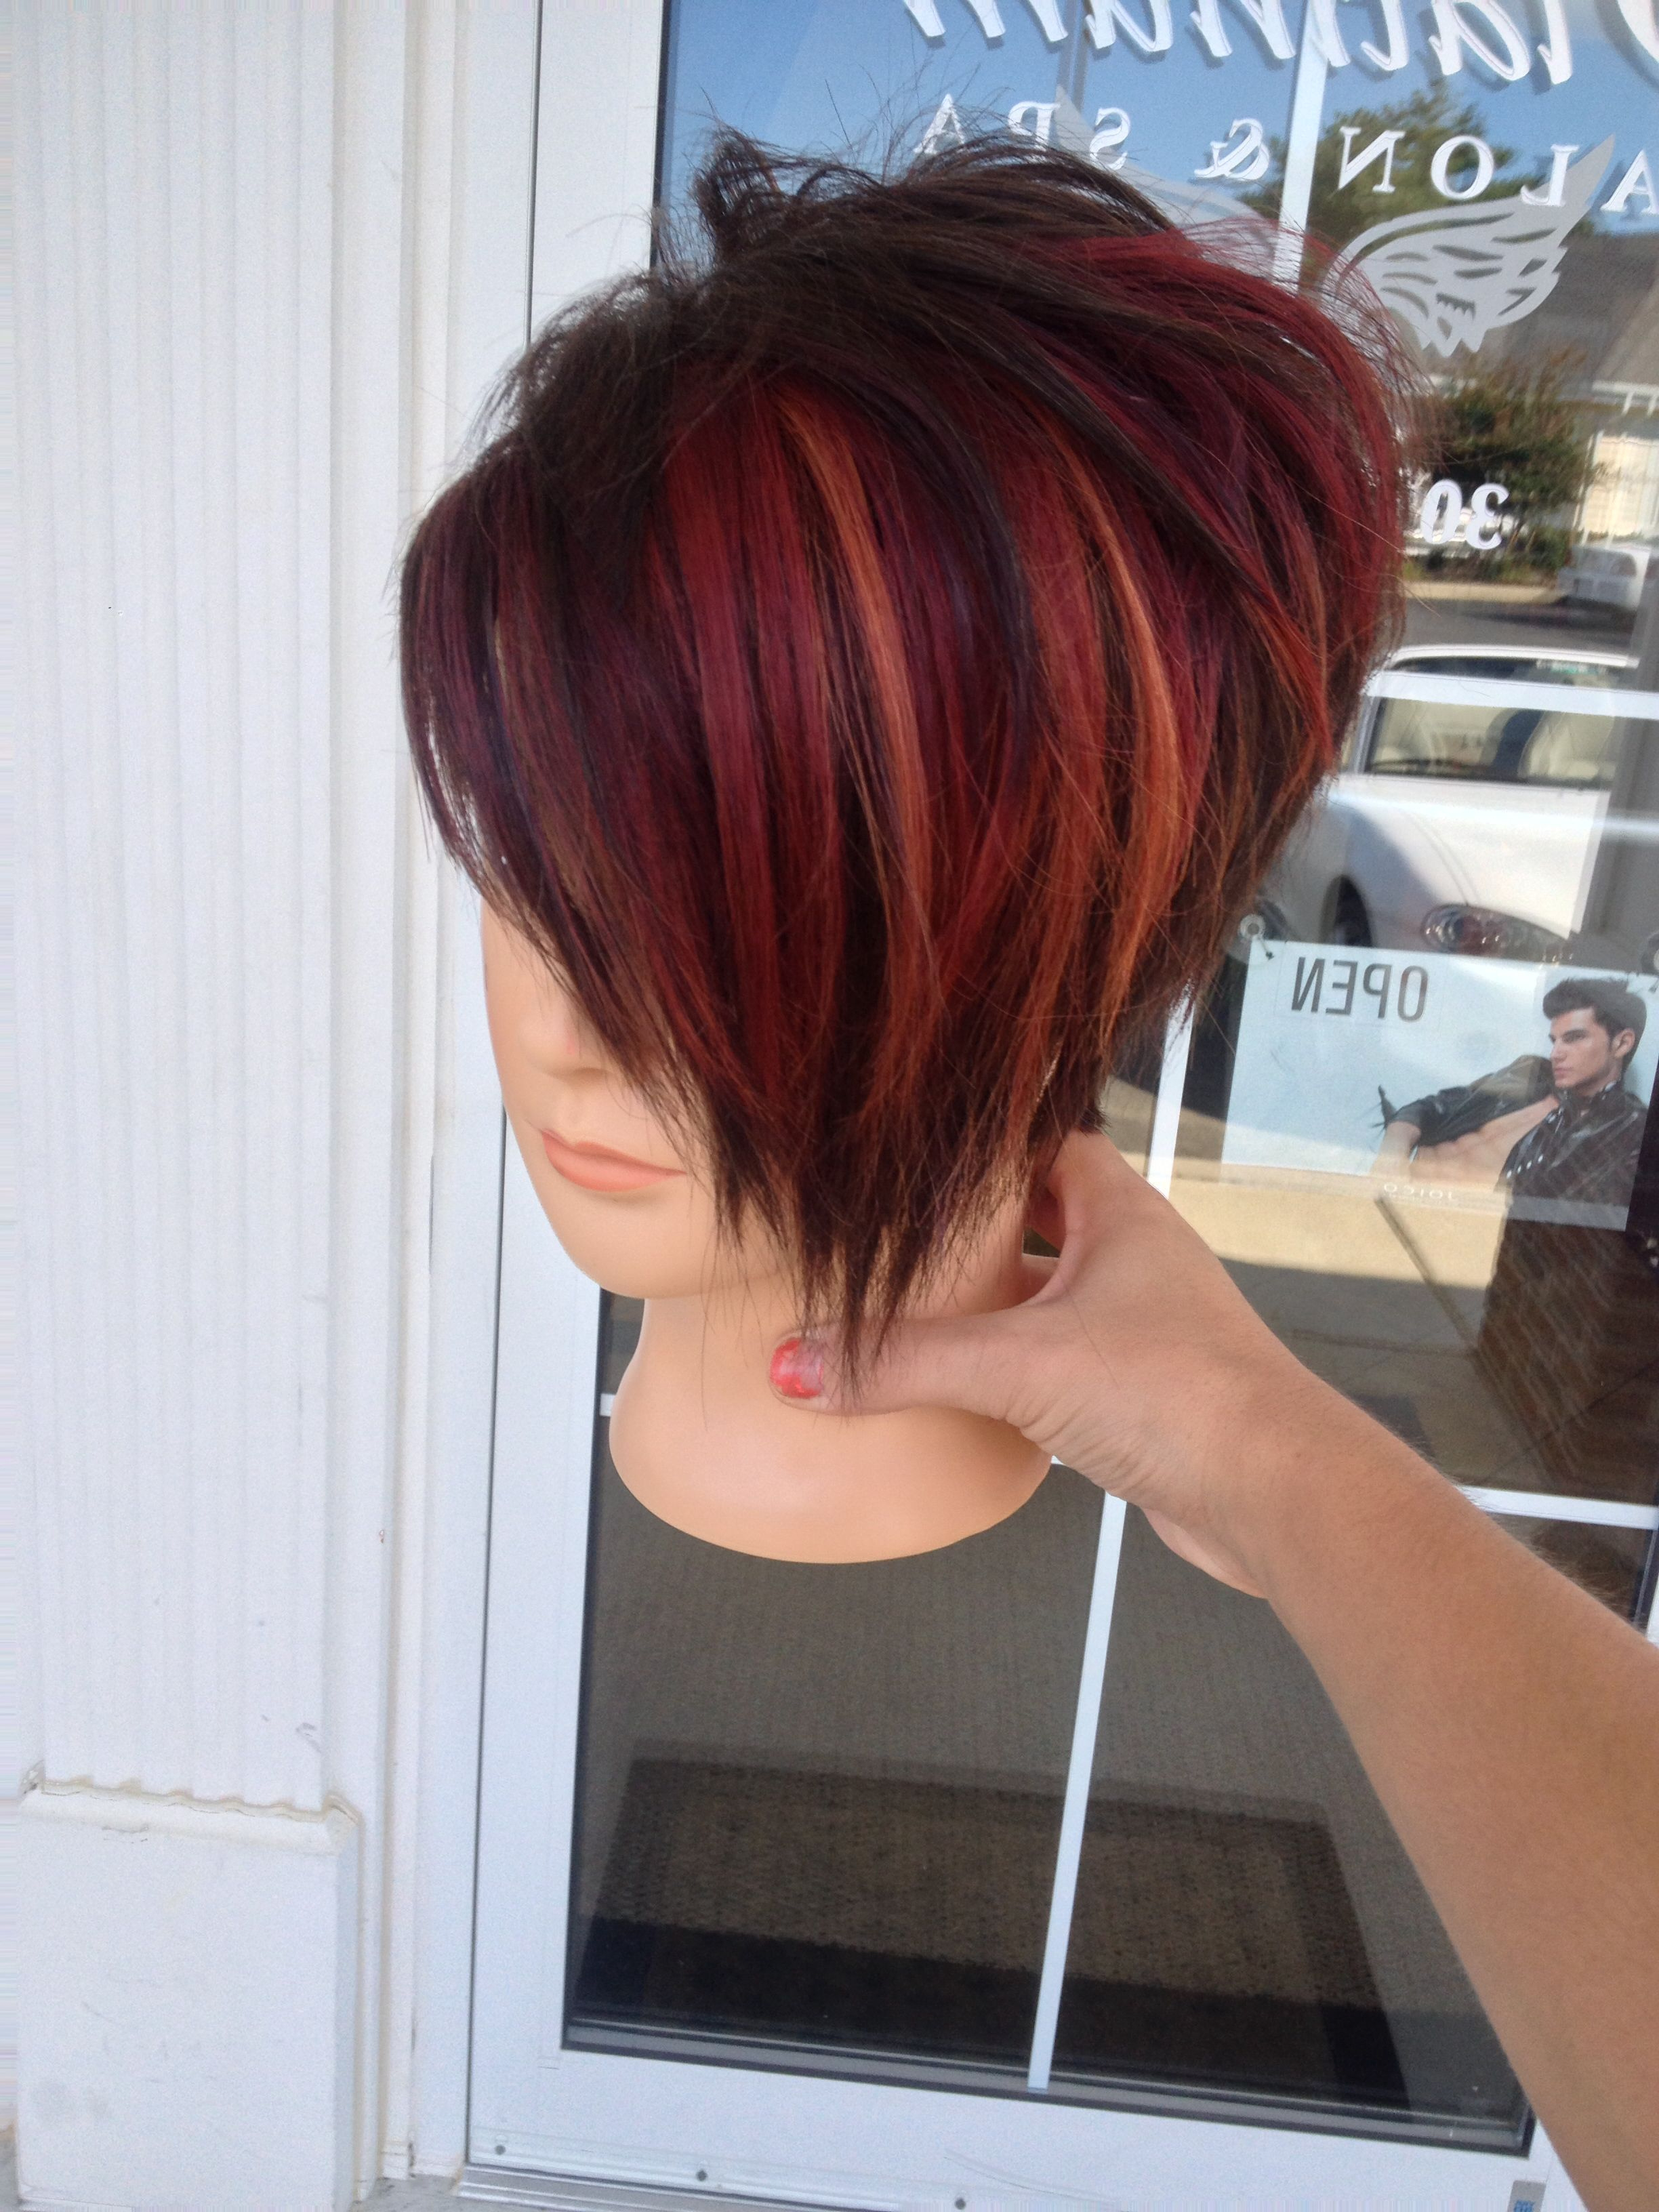 Hairstyles : Edgy Pixie Cut Hairstyle Marvelous Short Throughout Edgy Red Hairstyles (View 16 of 20)